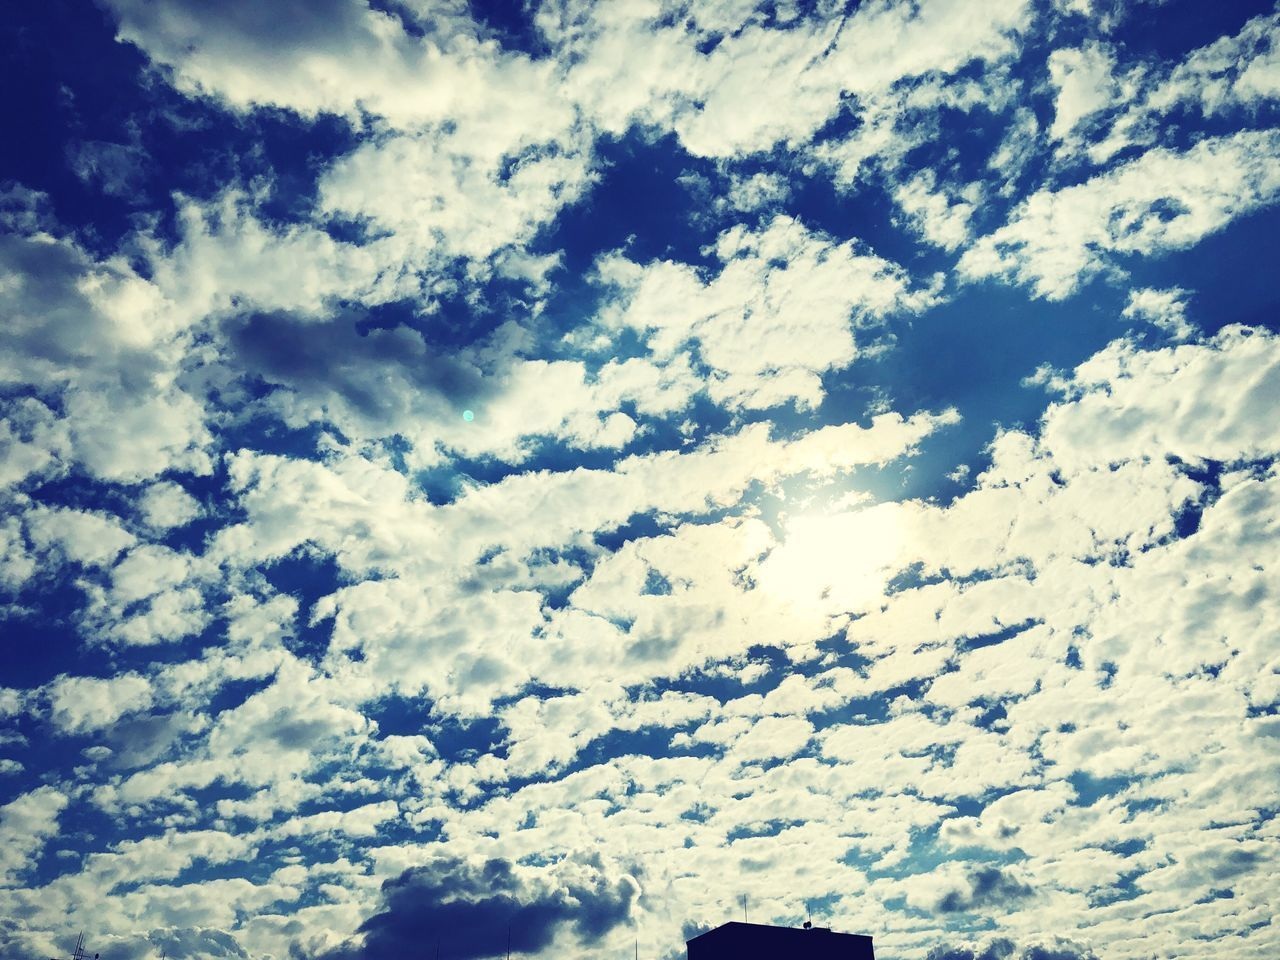 cloud - sky, sky, beauty in nature, low angle view, scenics - nature, tranquility, nature, no people, tranquil scene, day, backgrounds, outdoors, full frame, idyllic, cloudscape, white color, non-urban scene, blue, sunlight, meteorology, height